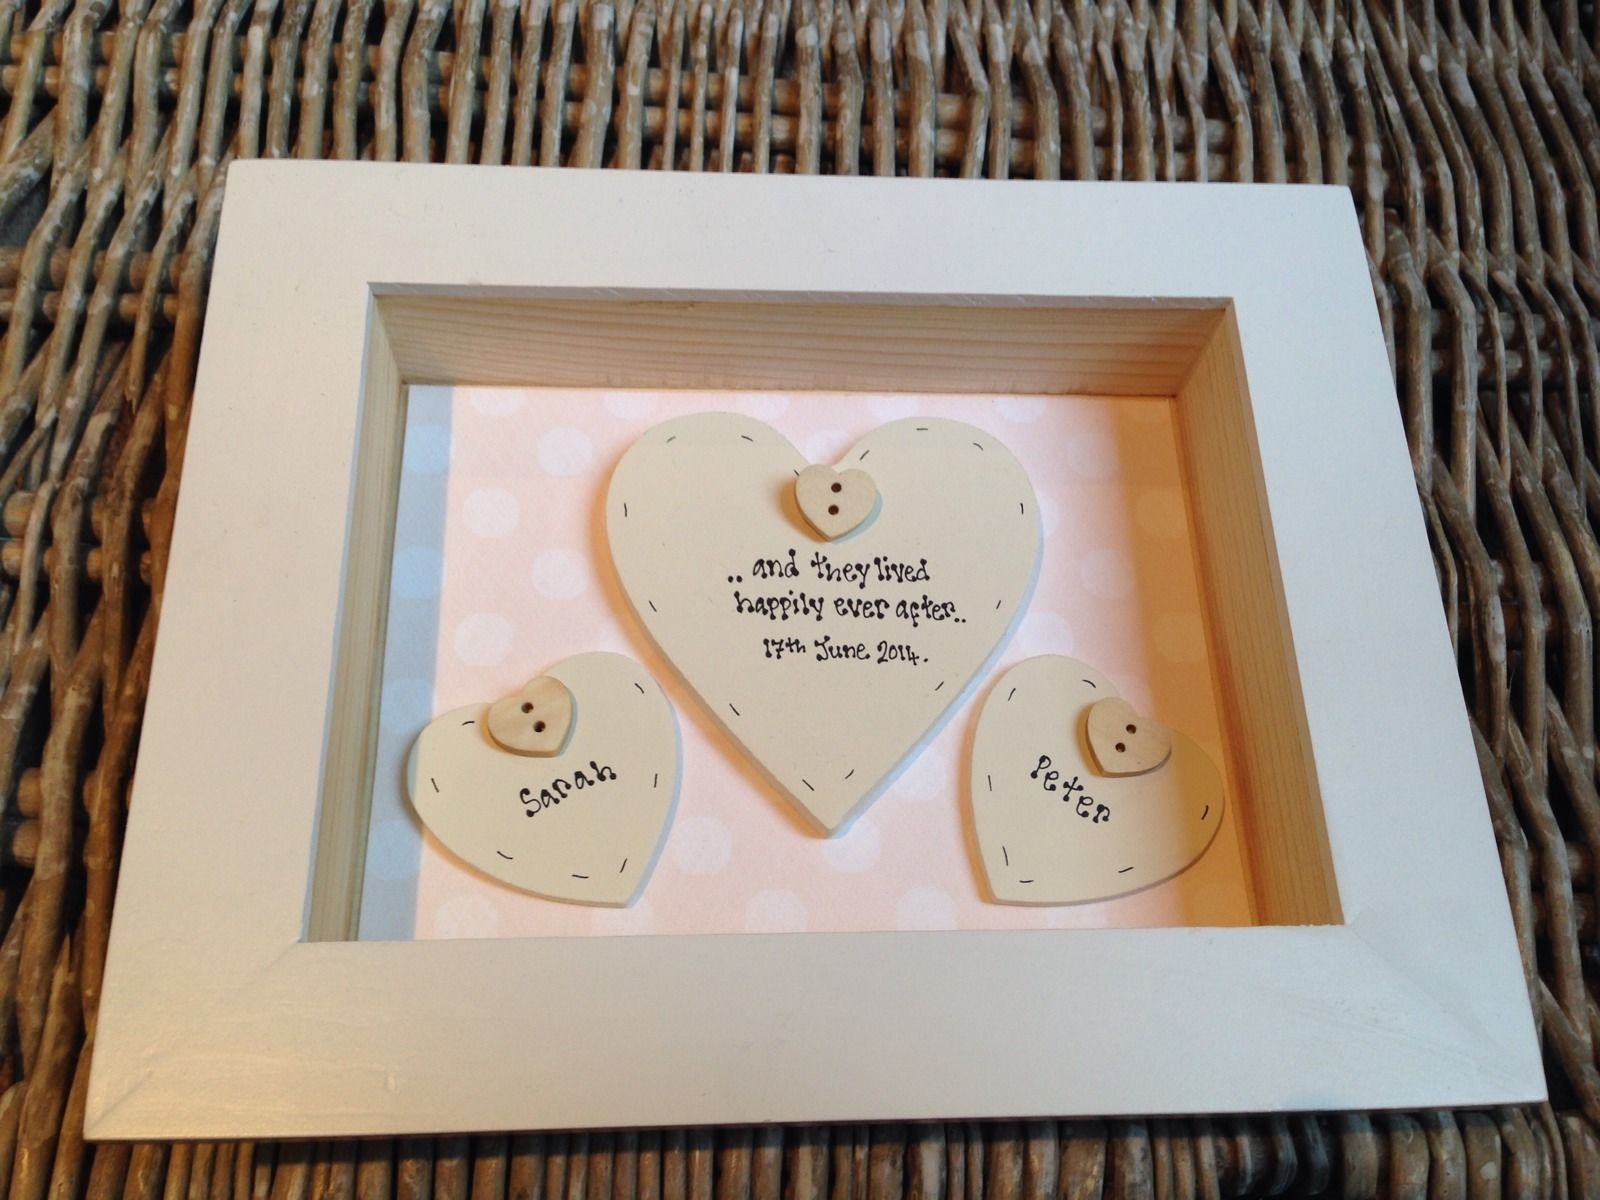 Gifts To Groom From Bride On Wedding Day: Shabby Personalised Chic Box Frame Gift For Bride & Groom